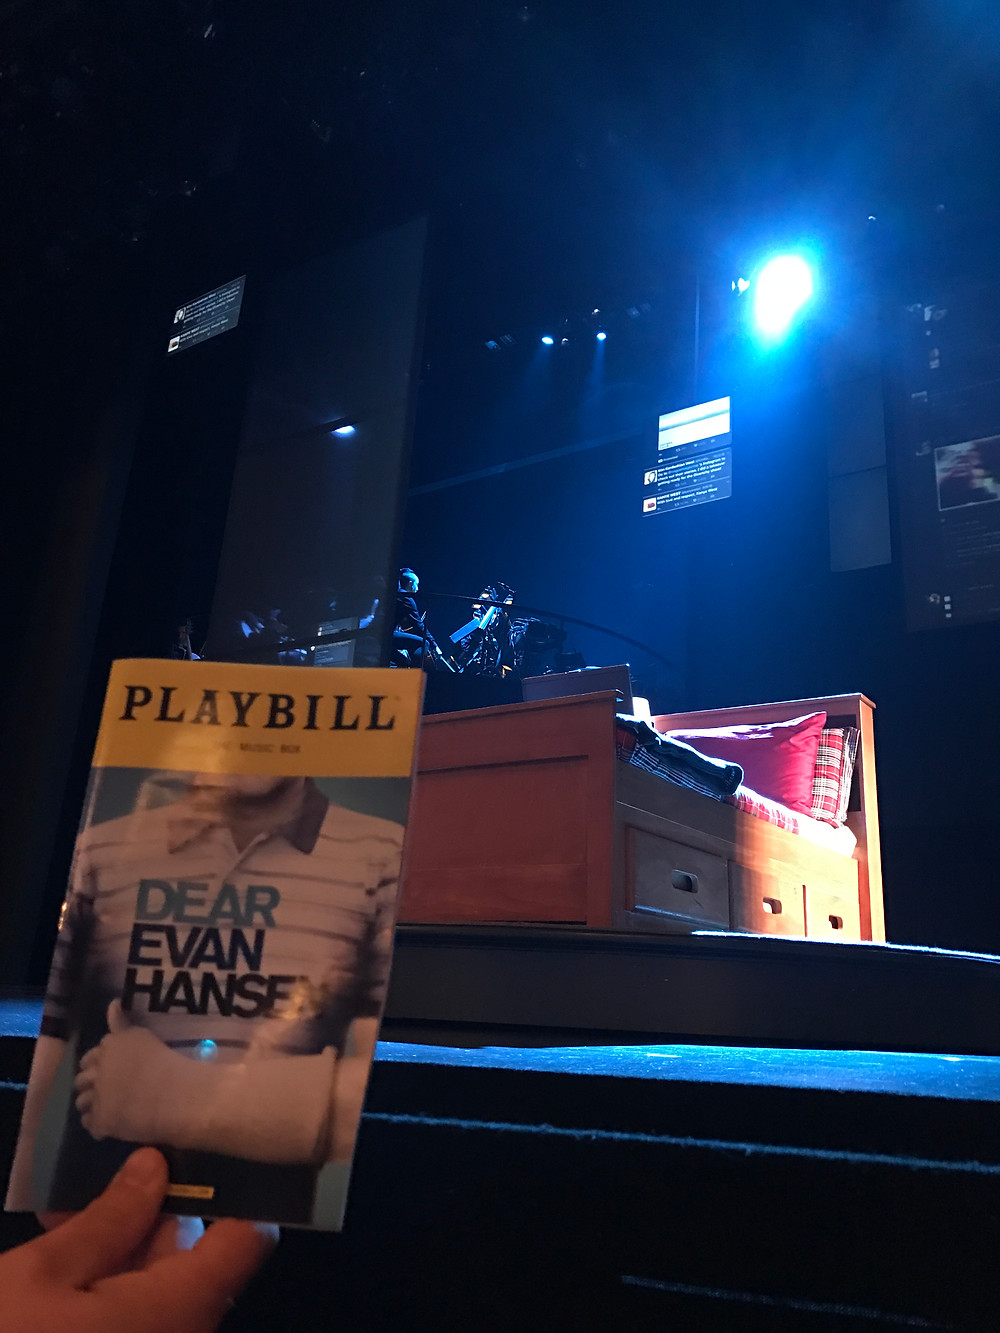 We had the good fortune (and hustle) to see both Dear Evan Hansen and Hamilton, with their original casts from the front row!